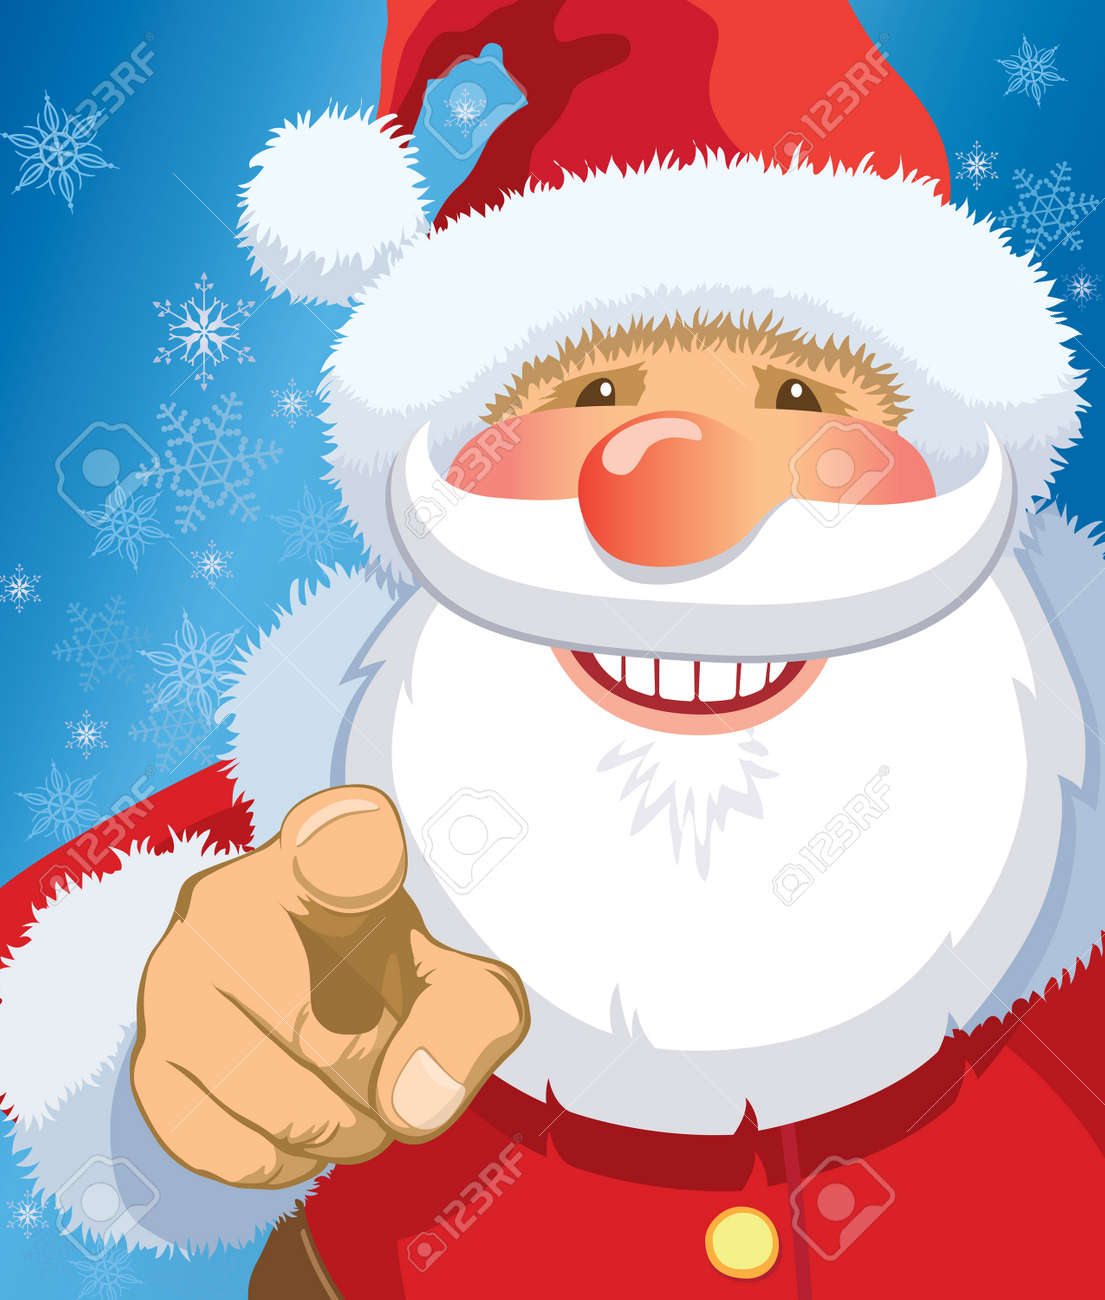 Smiling Santa Claus pointing at you, snowflakes in the background. - 8189262